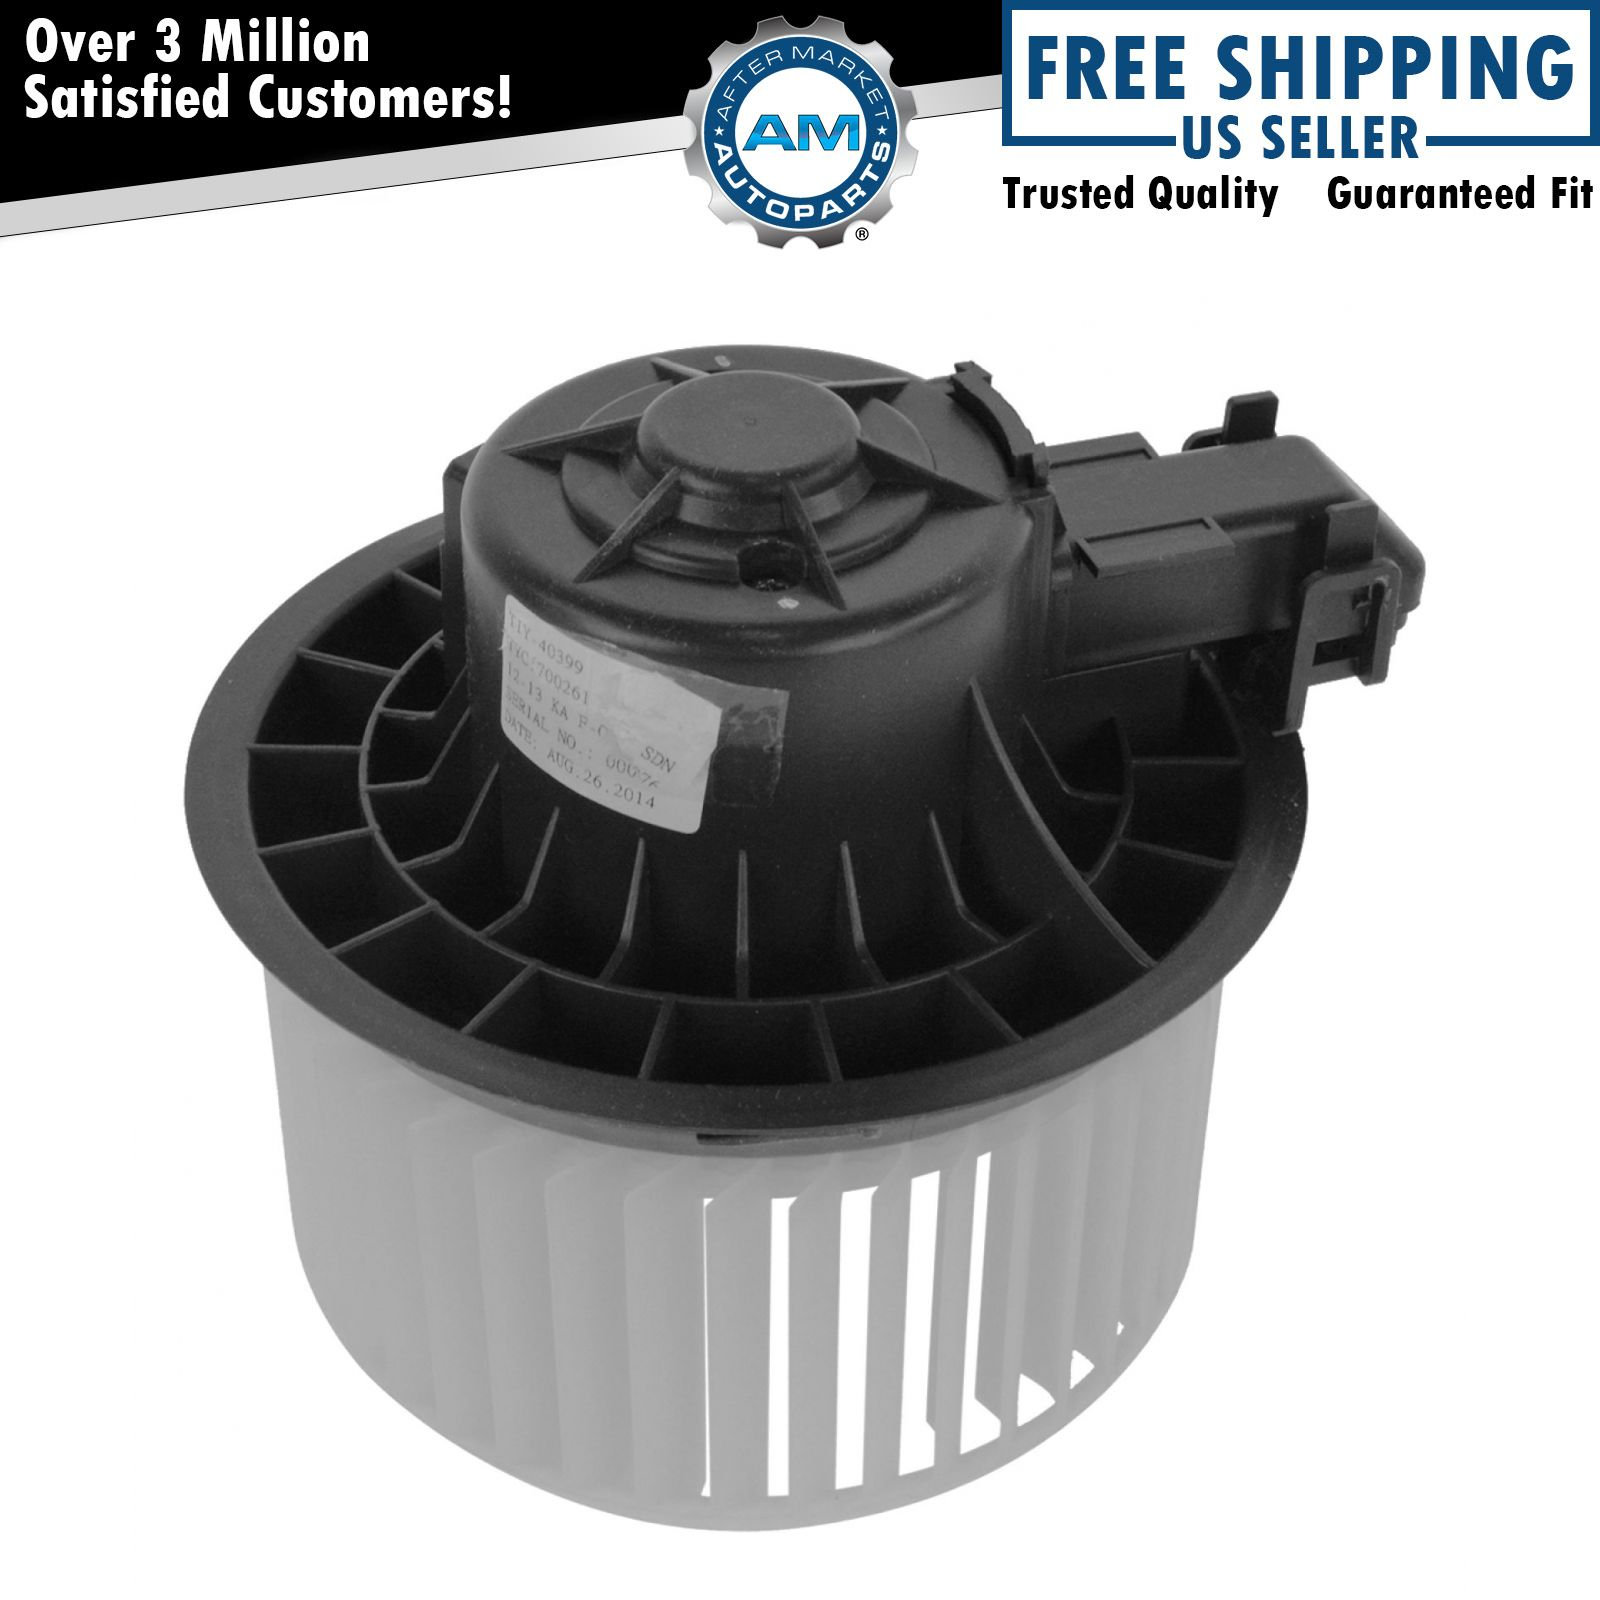 NEW Heater Blower Motor with Fan Cage For Kia Forte 2010-2013 TYC700261LP60-123B